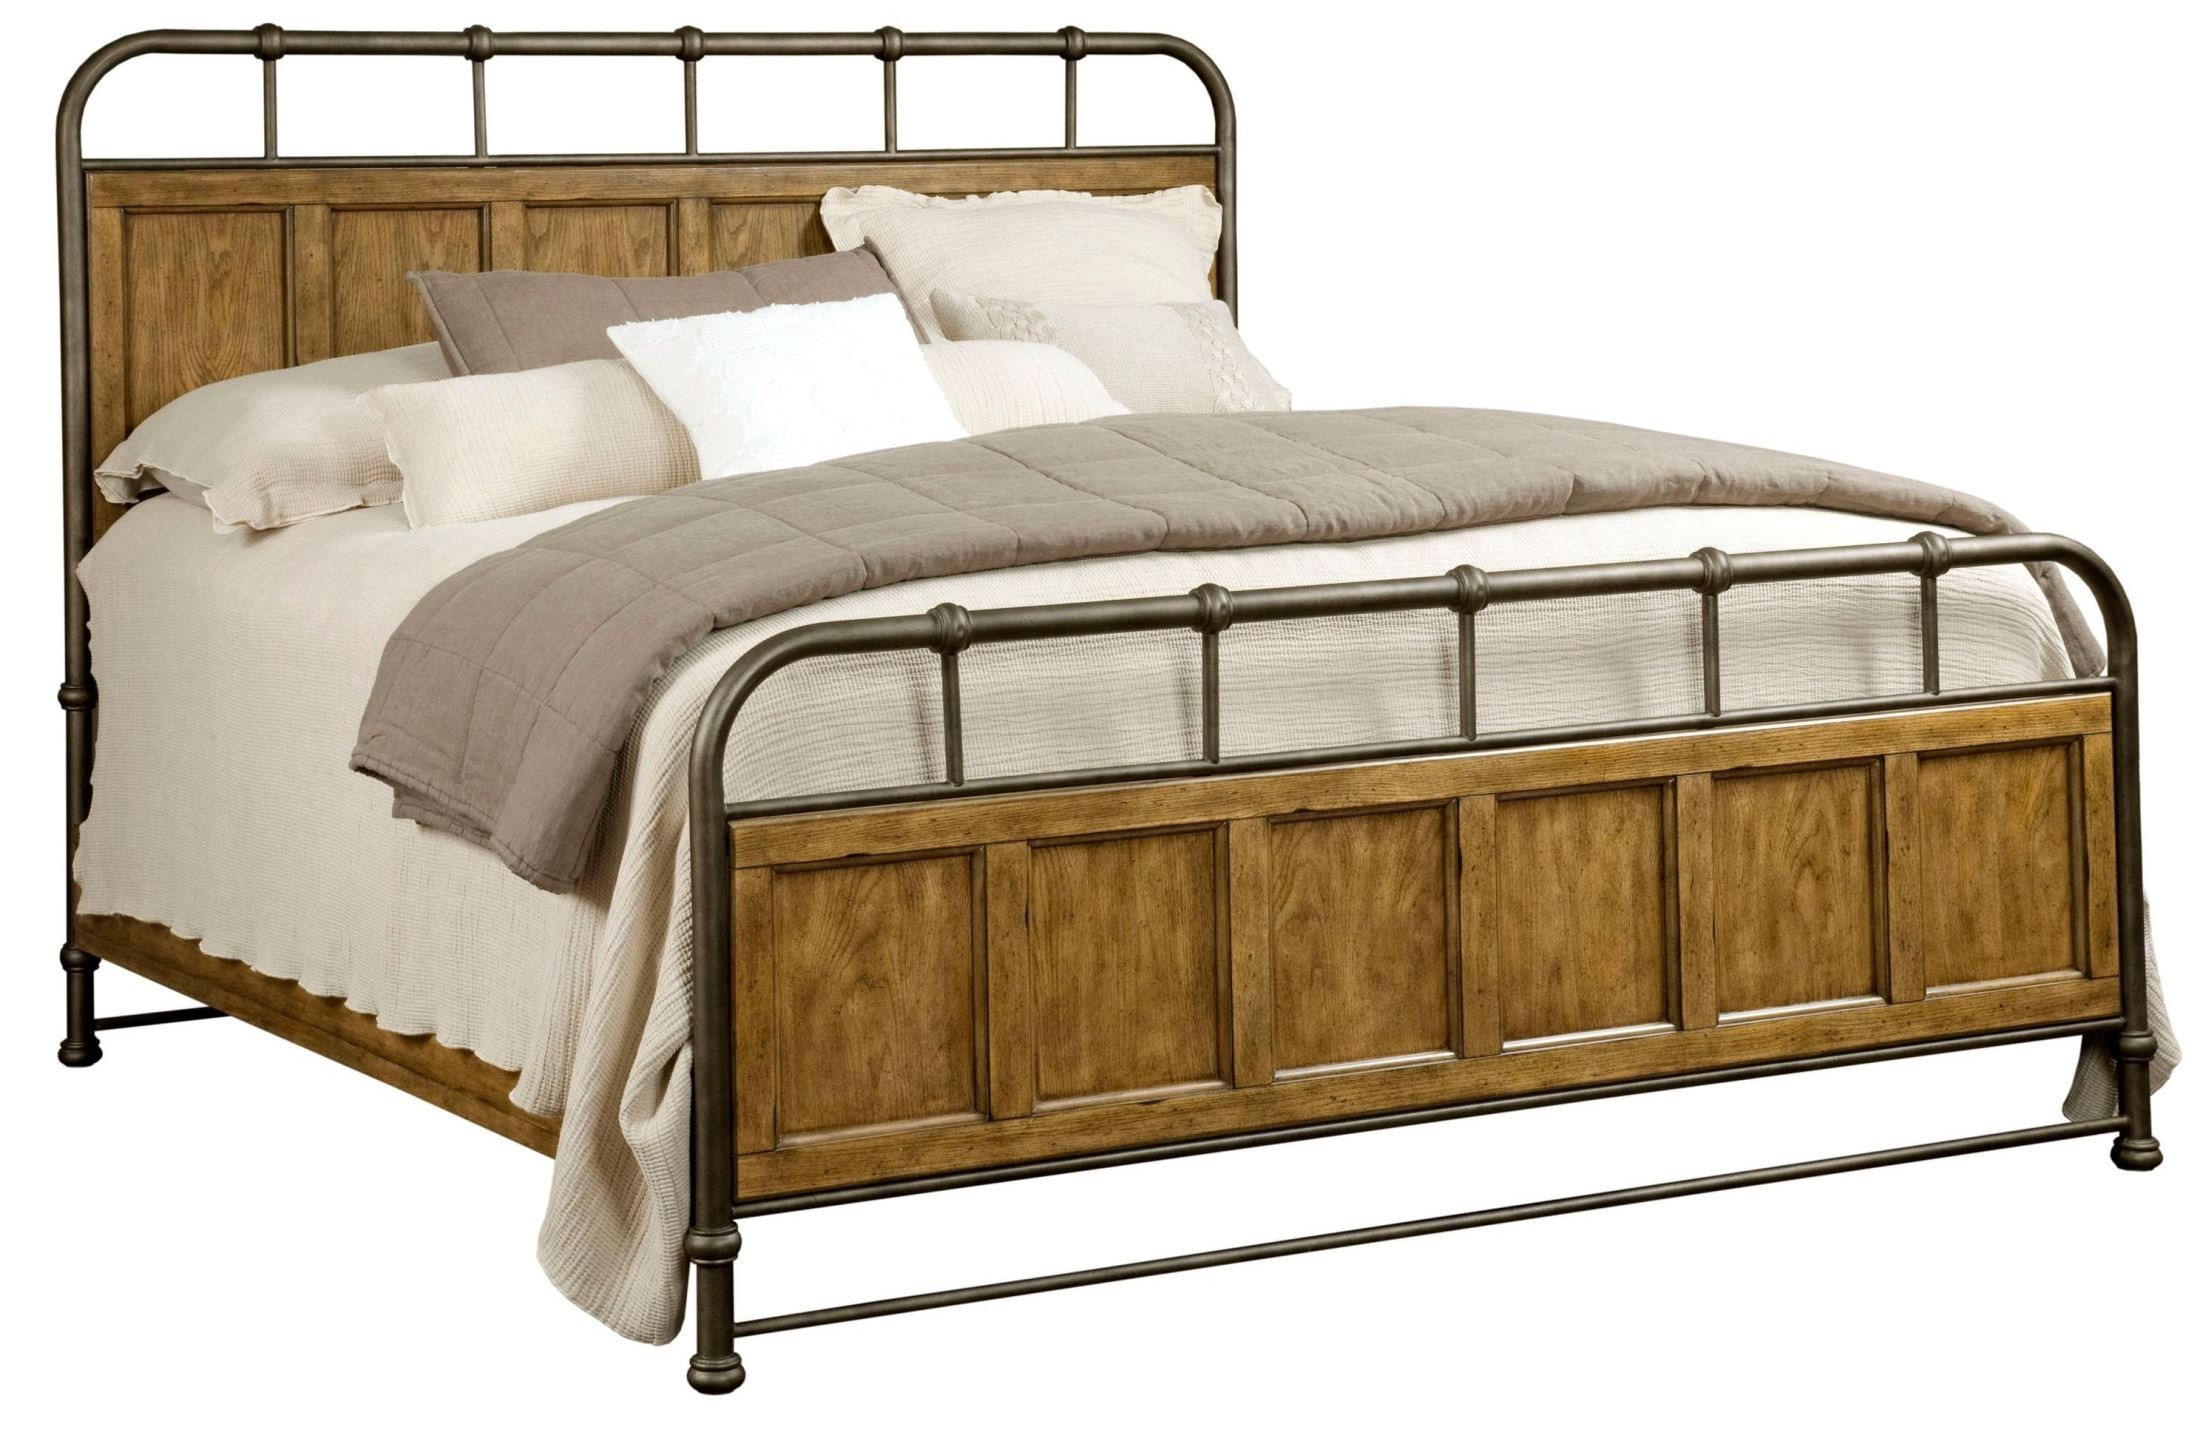 Wood And Metal King Bed